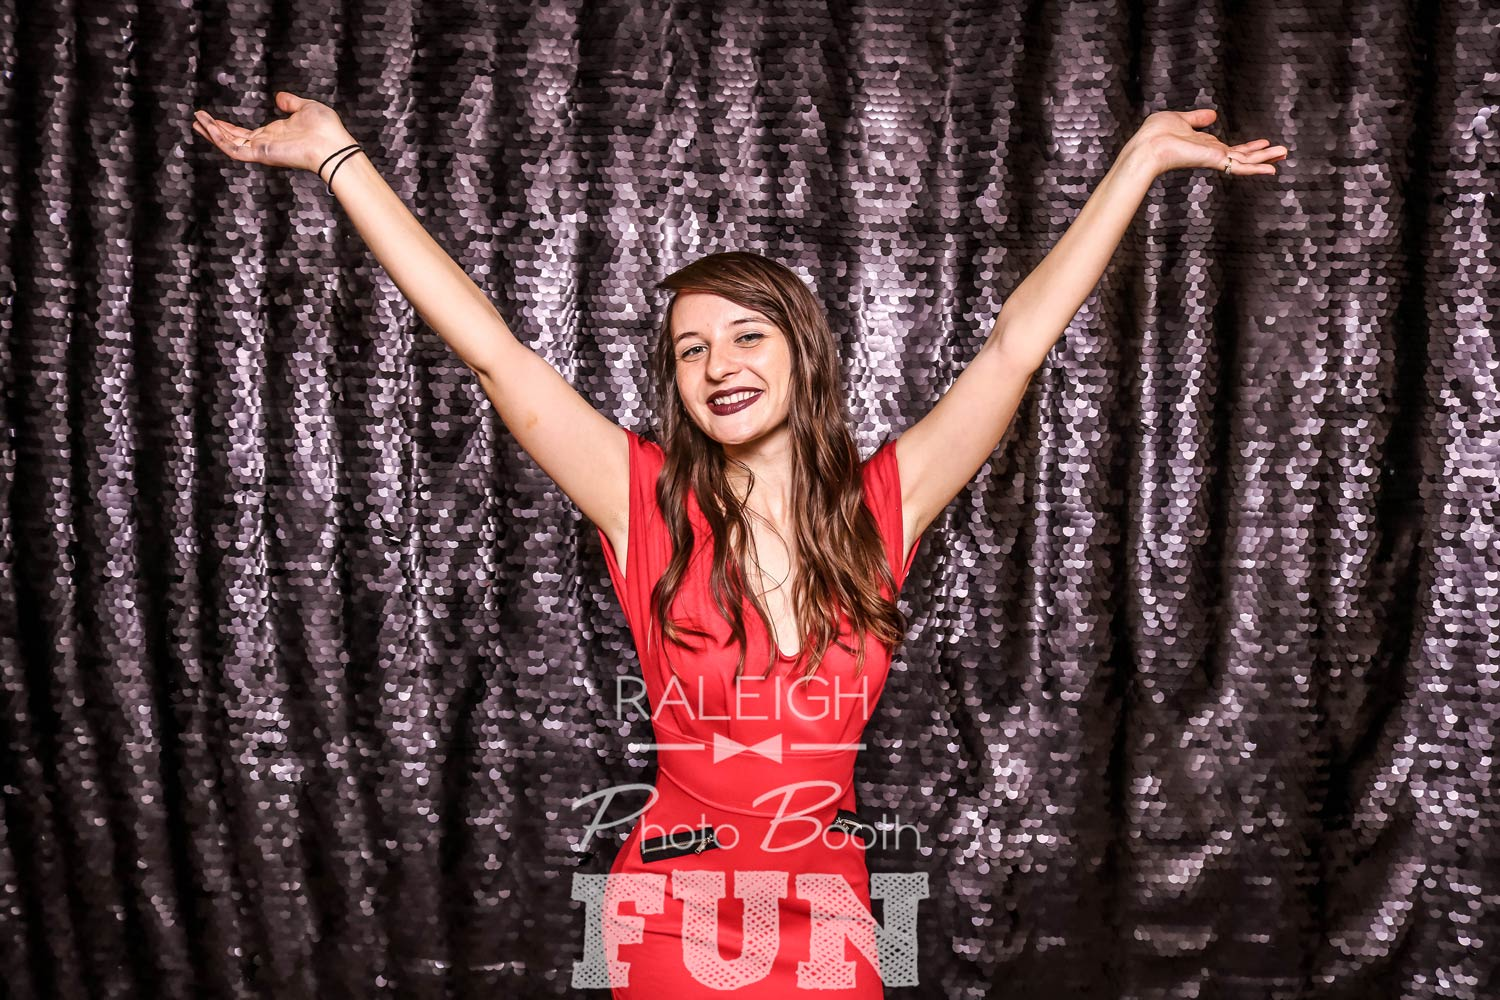 Black-Sequin-Raleigh-Photo-Booth-1